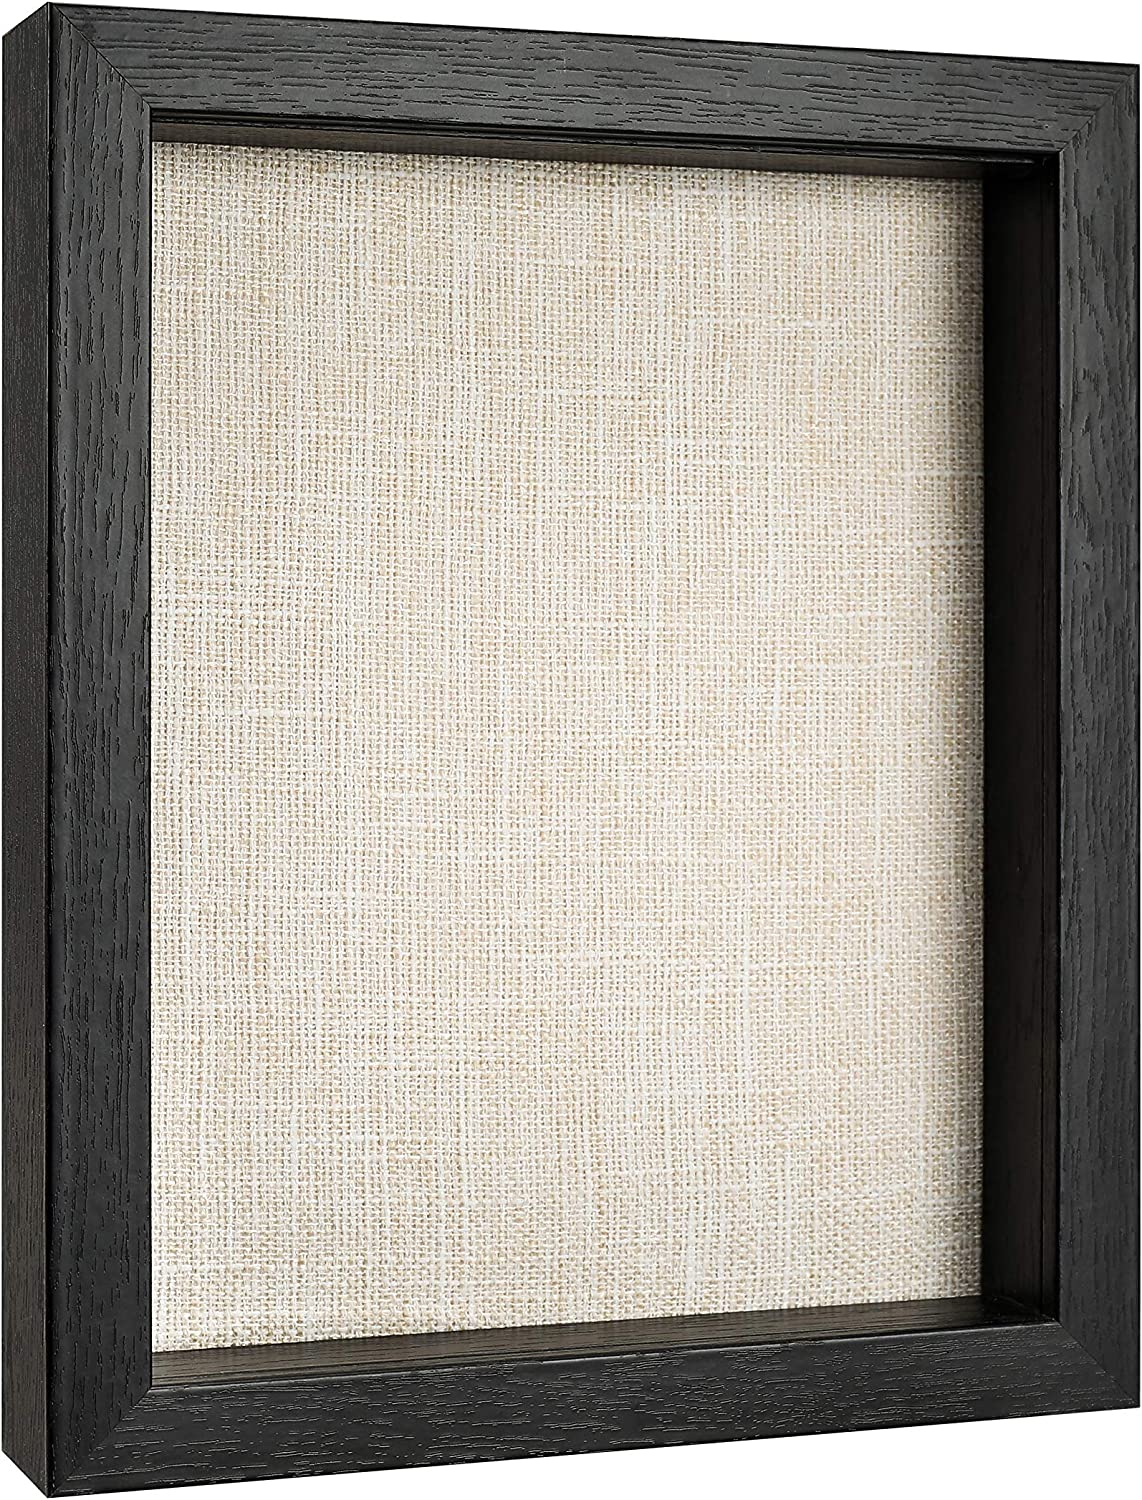 8x10 Shadow Box Display Case for Memorabilia, Pins, Awards, Medals, Tickets and Photos - Wood Shadow Box Frame (1, Black)